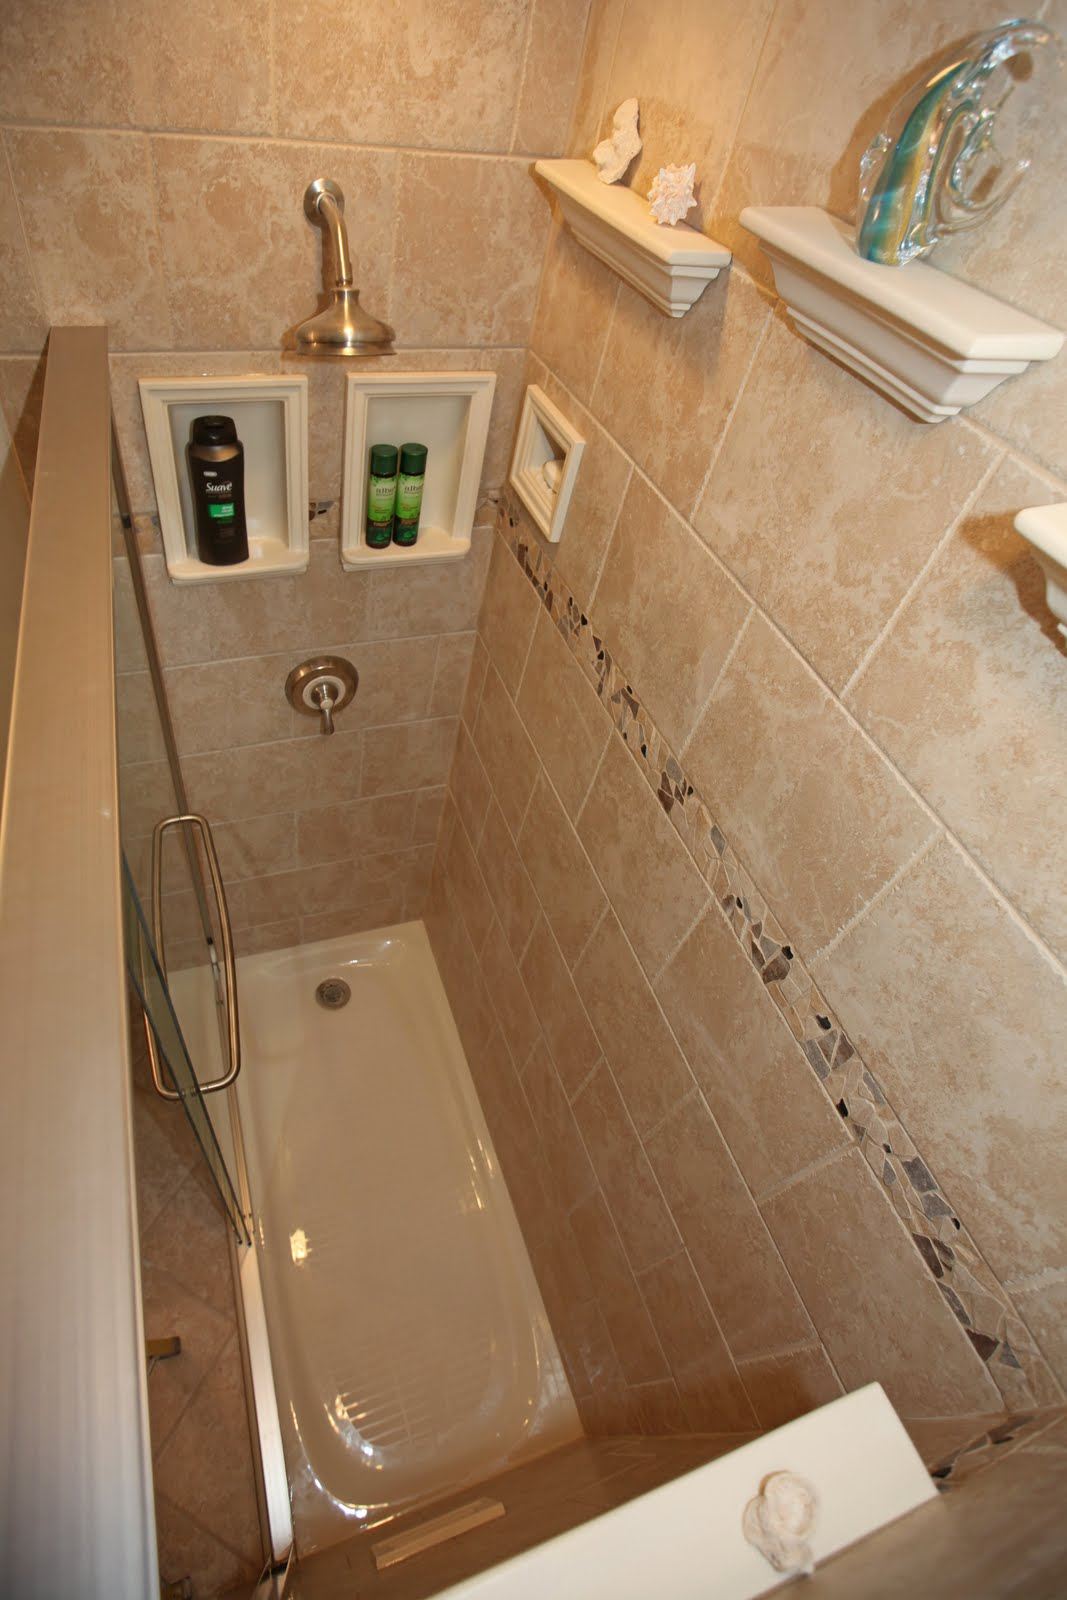 Bathroom remodeling design ideas tile shower niches architectural niches crown and shower foot - Bathroom shower ideas ...